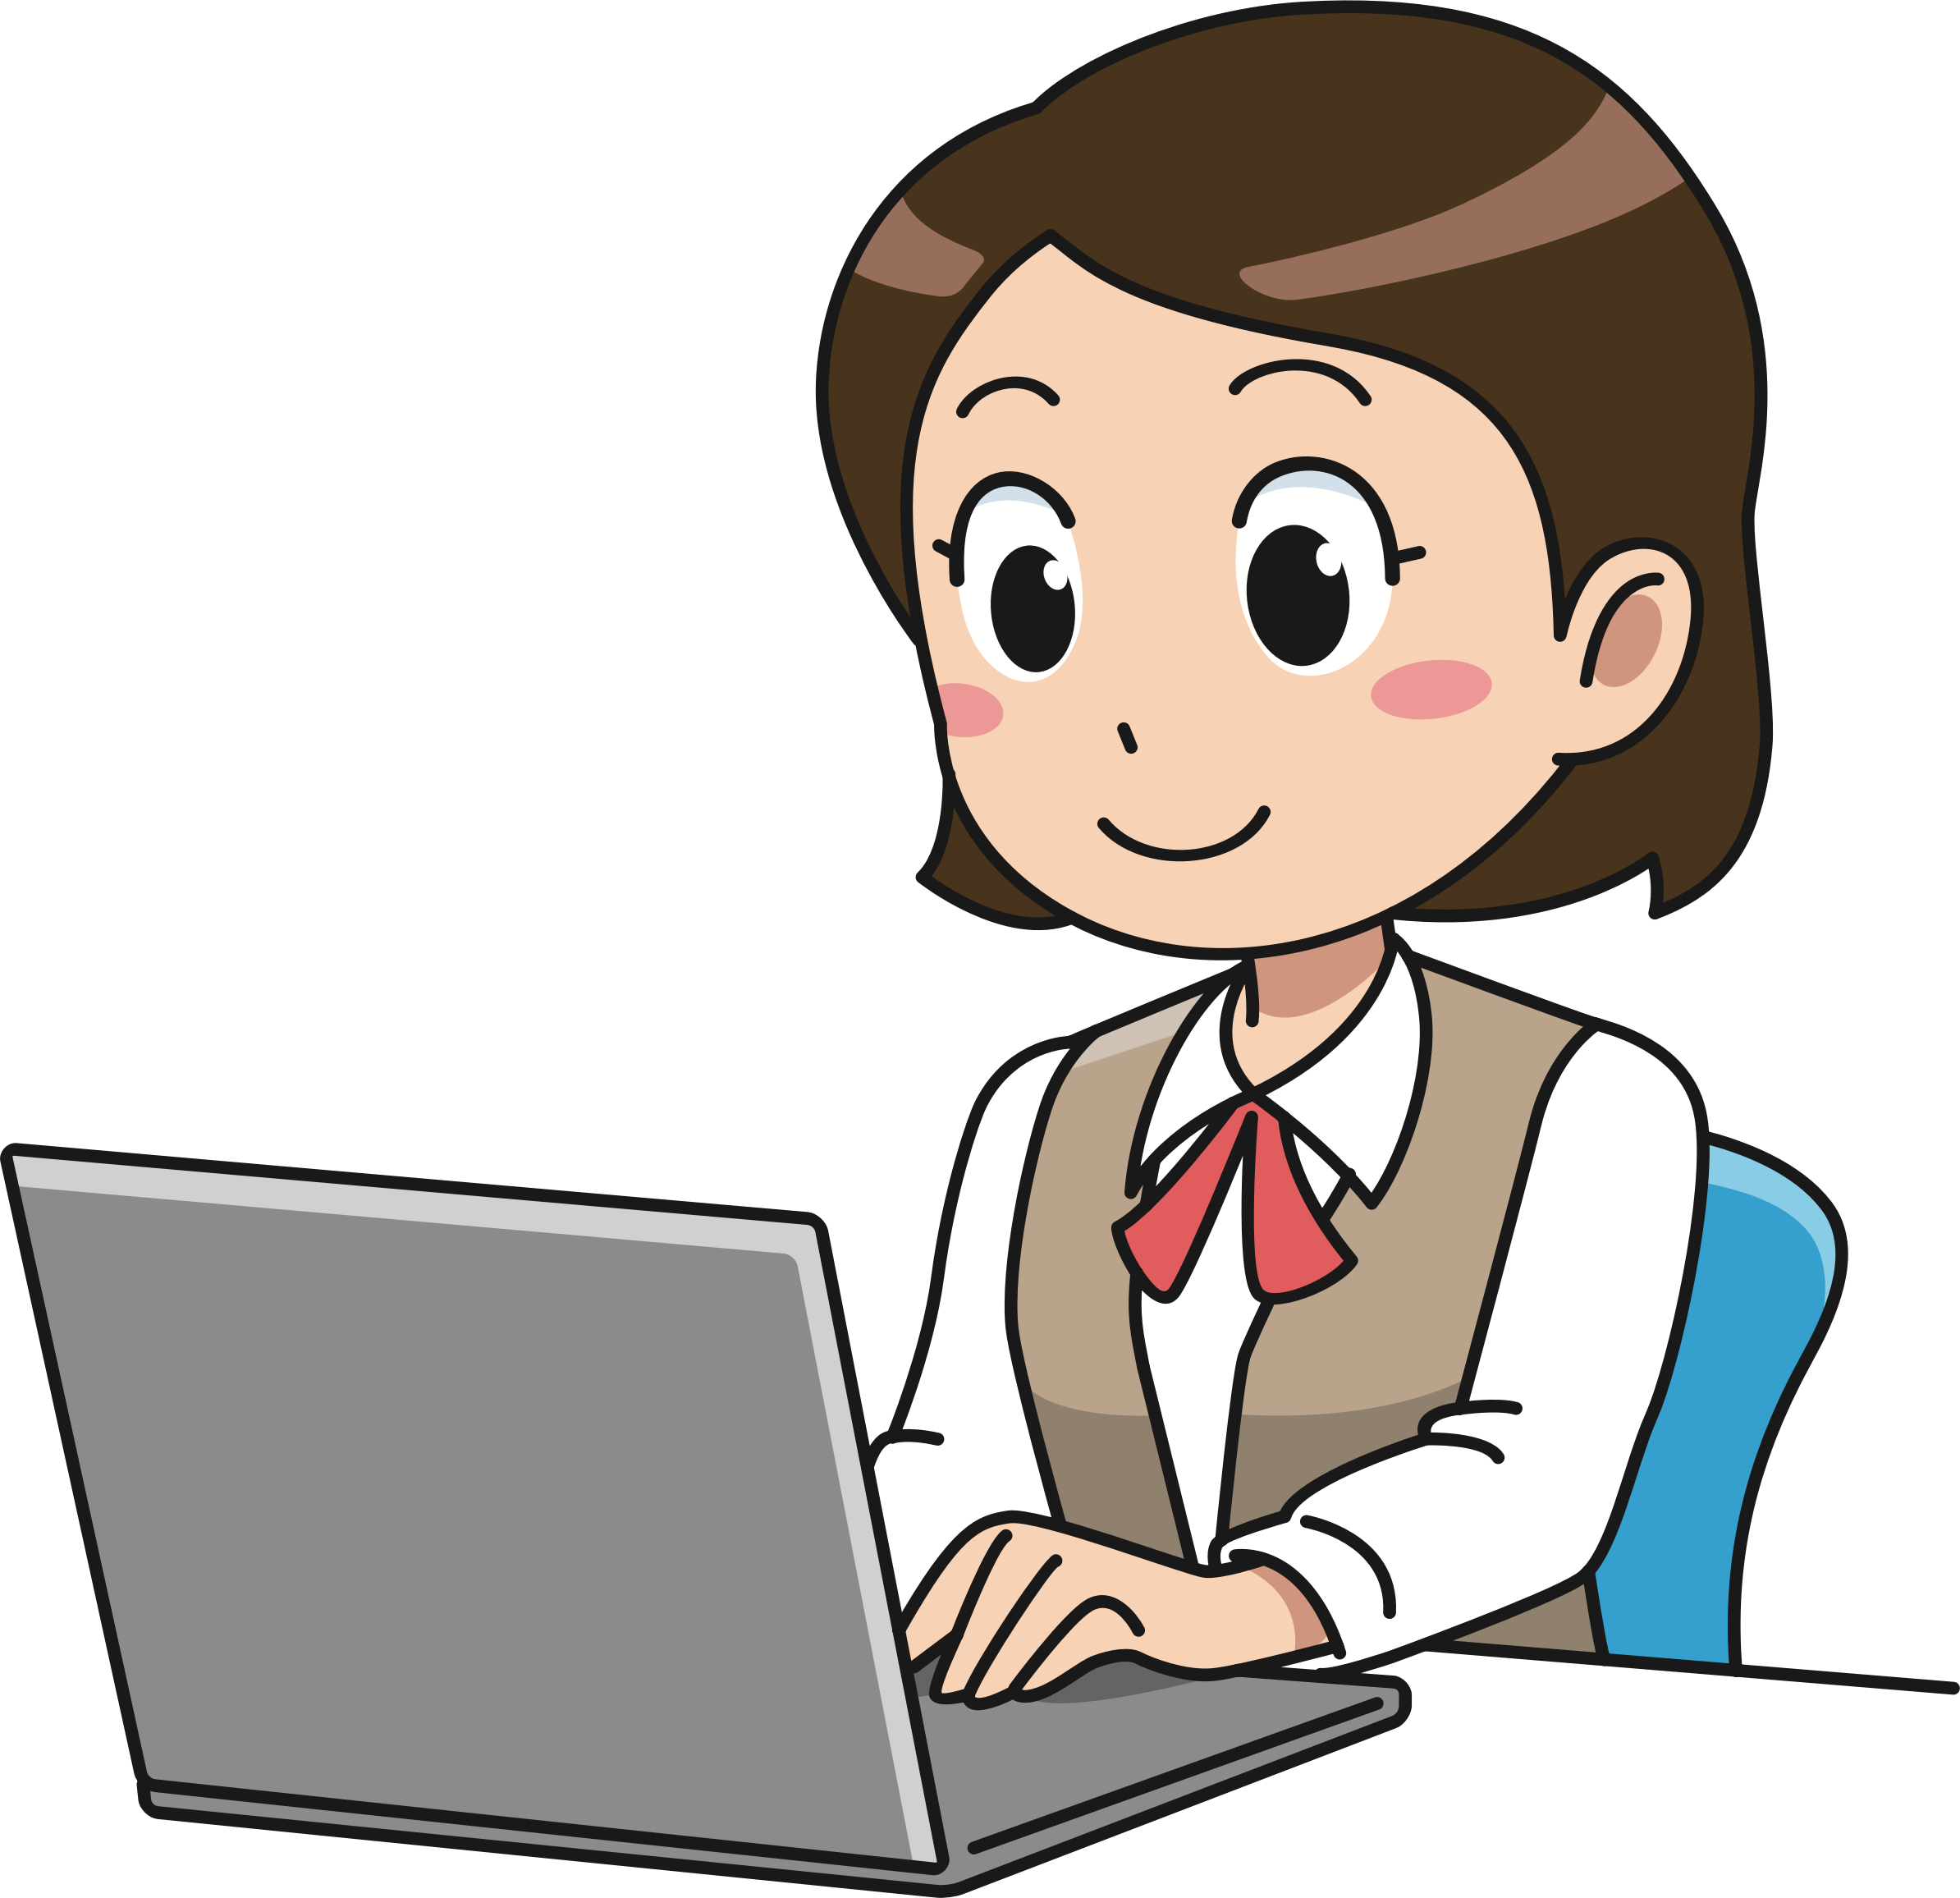 jpg freeuse library Business english beacon heights. Learn clipart girl.